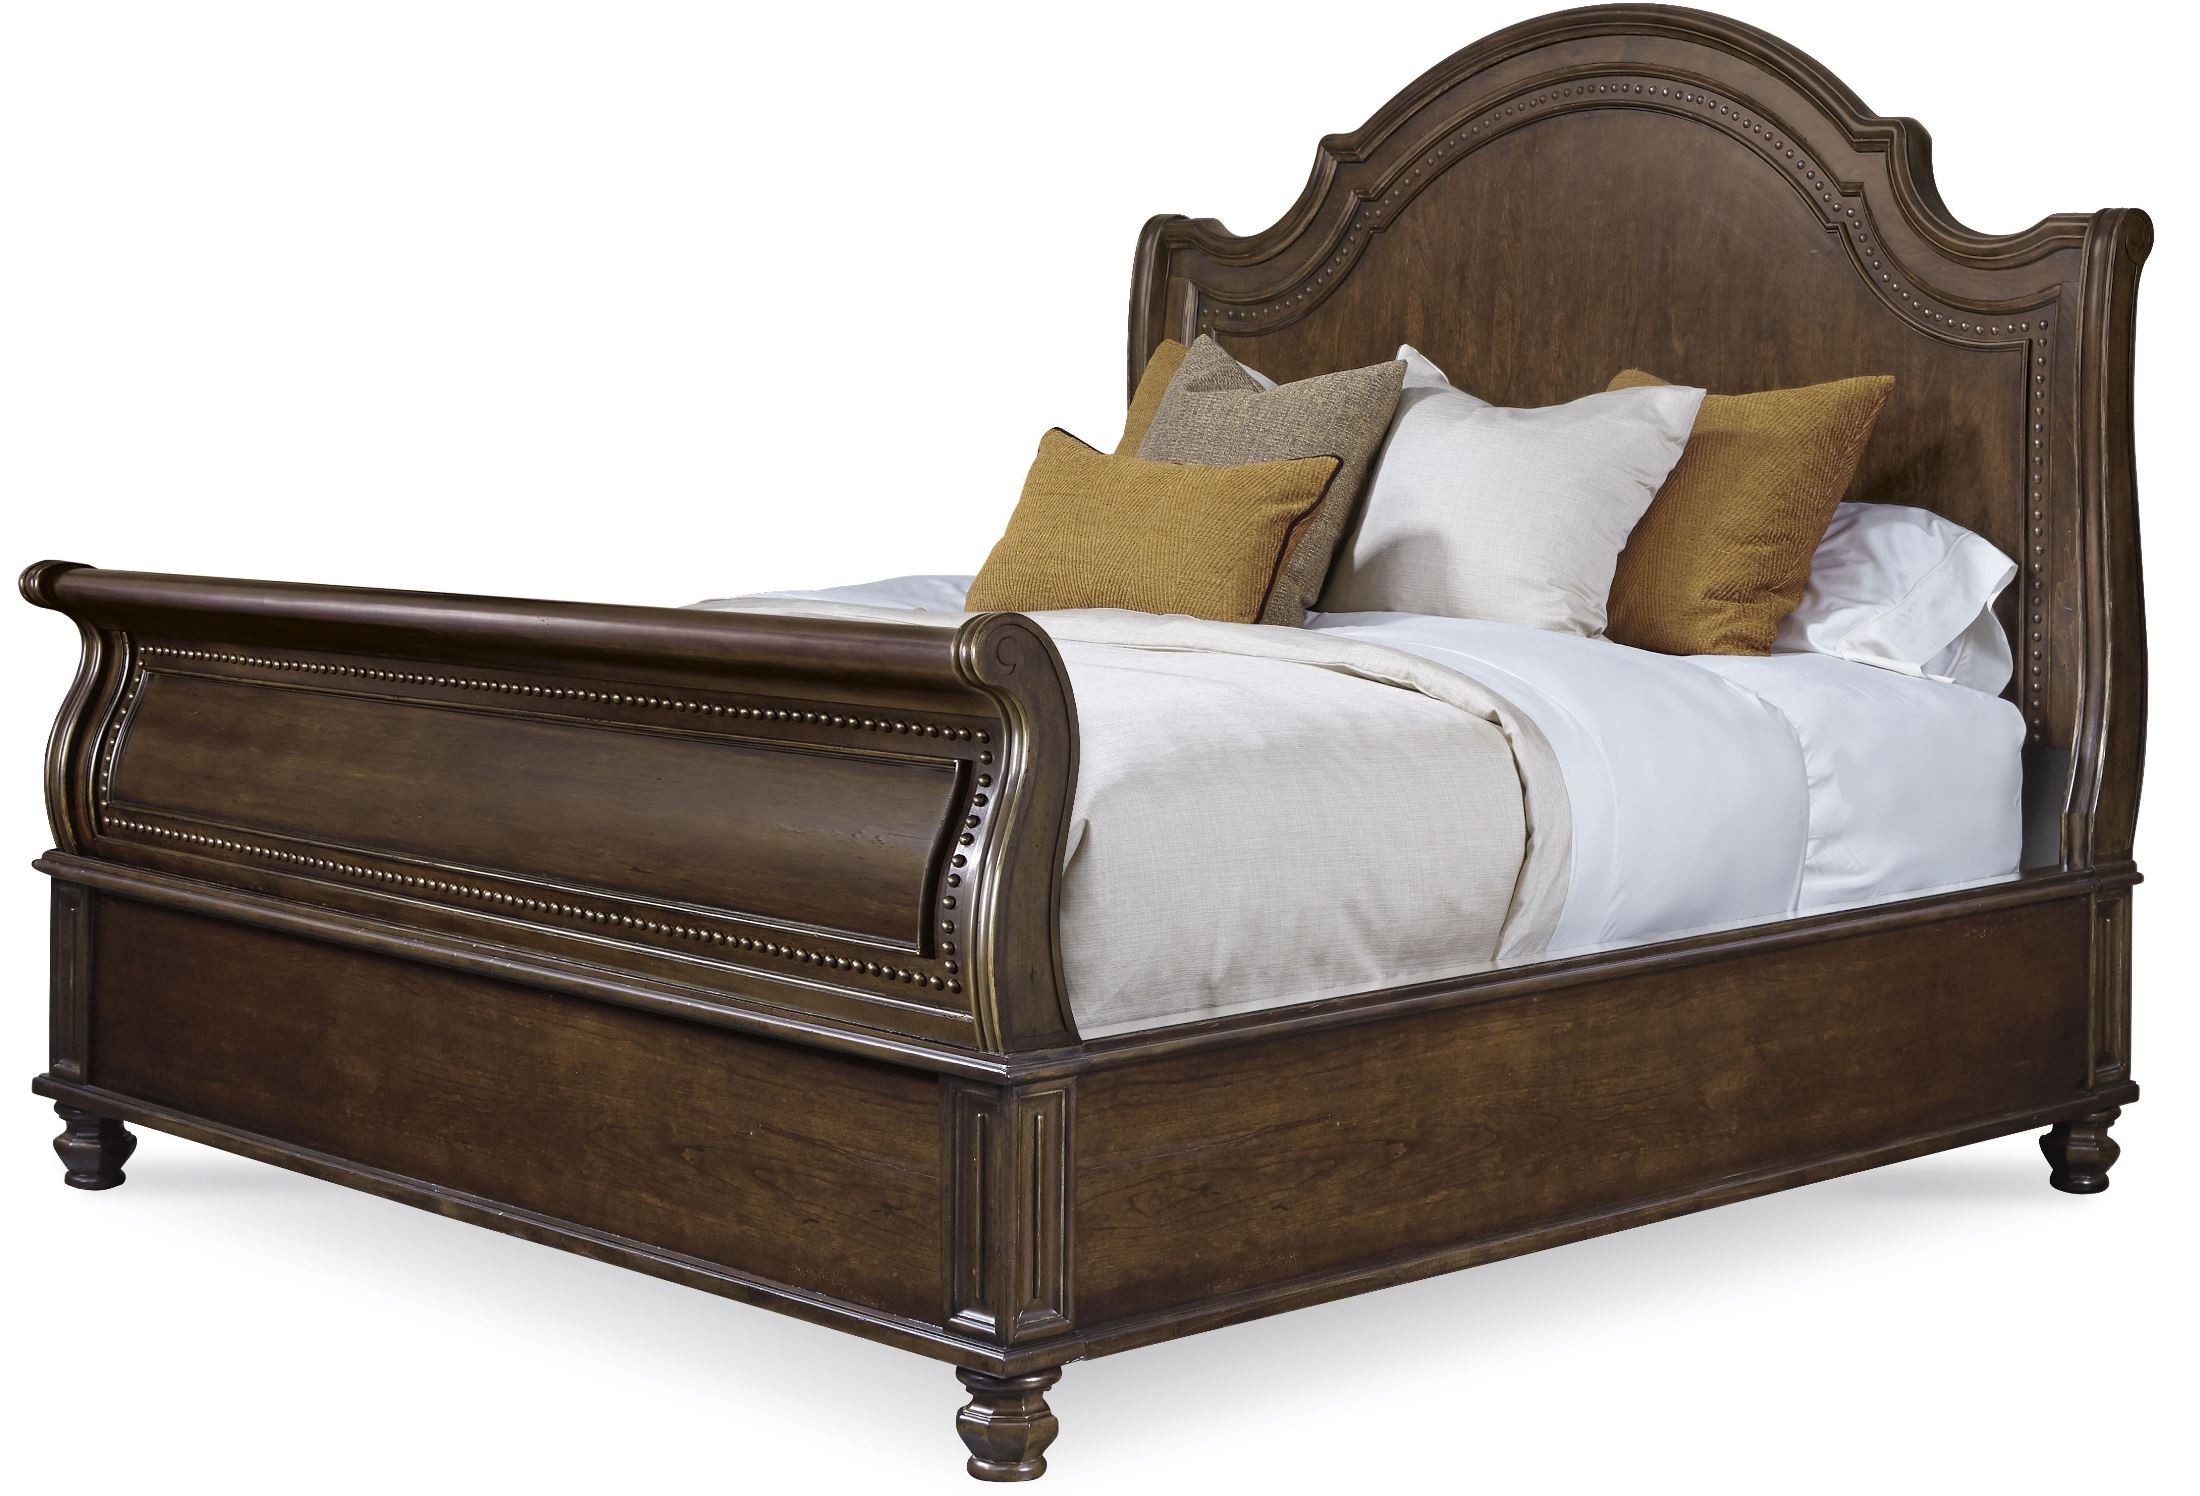 la viera queen sleigh bed from art 225155 2107 coleman furniture. Black Bedroom Furniture Sets. Home Design Ideas